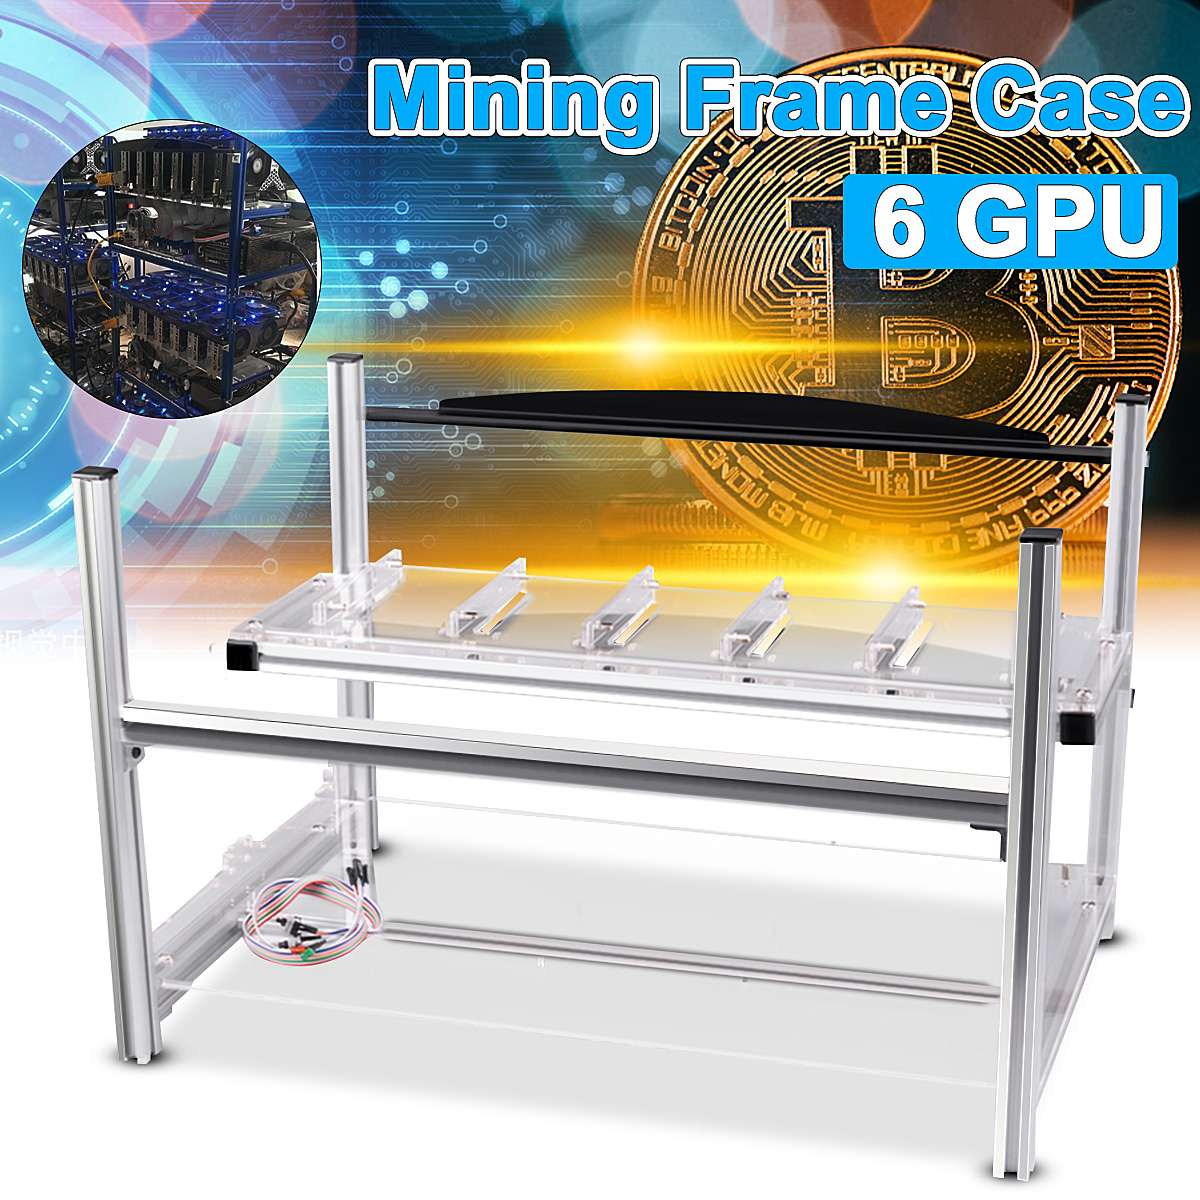 DIY Aluminum Frame Case For 6 GPU Mining Crypto-currency Mining Rigs fo Building Professional Crypto-currency Mining RigsDIY Aluminum Frame Case For 6 GPU Mining Crypto-currency Mining Rigs fo Building Professional Crypto-currency Mining Rigs